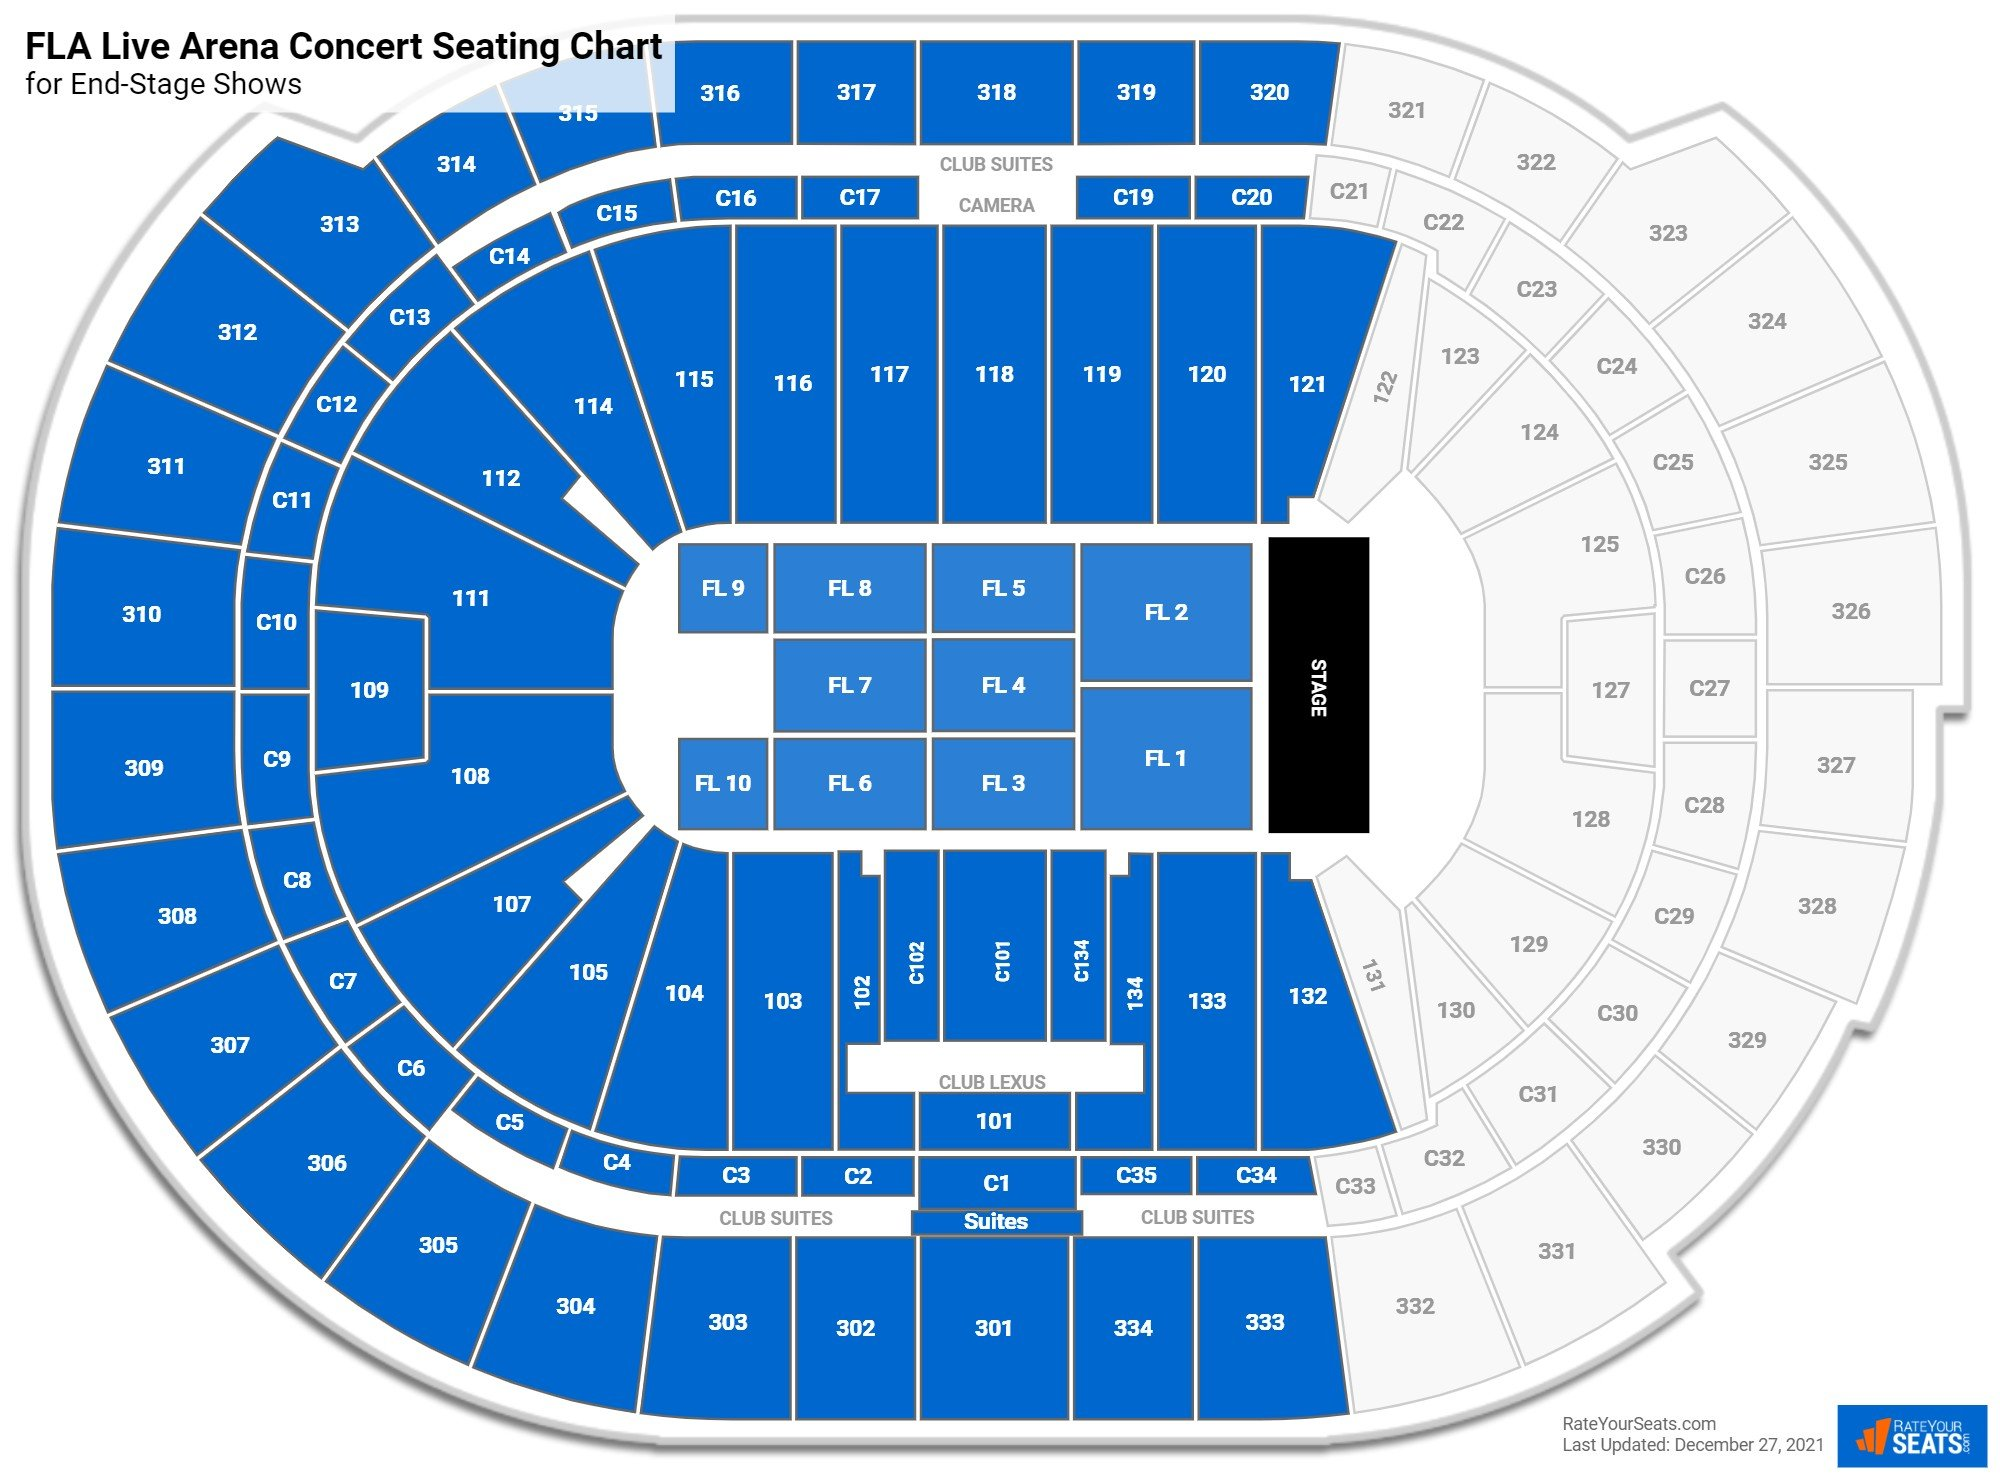 BB&T Center Seating Chart for Concerts